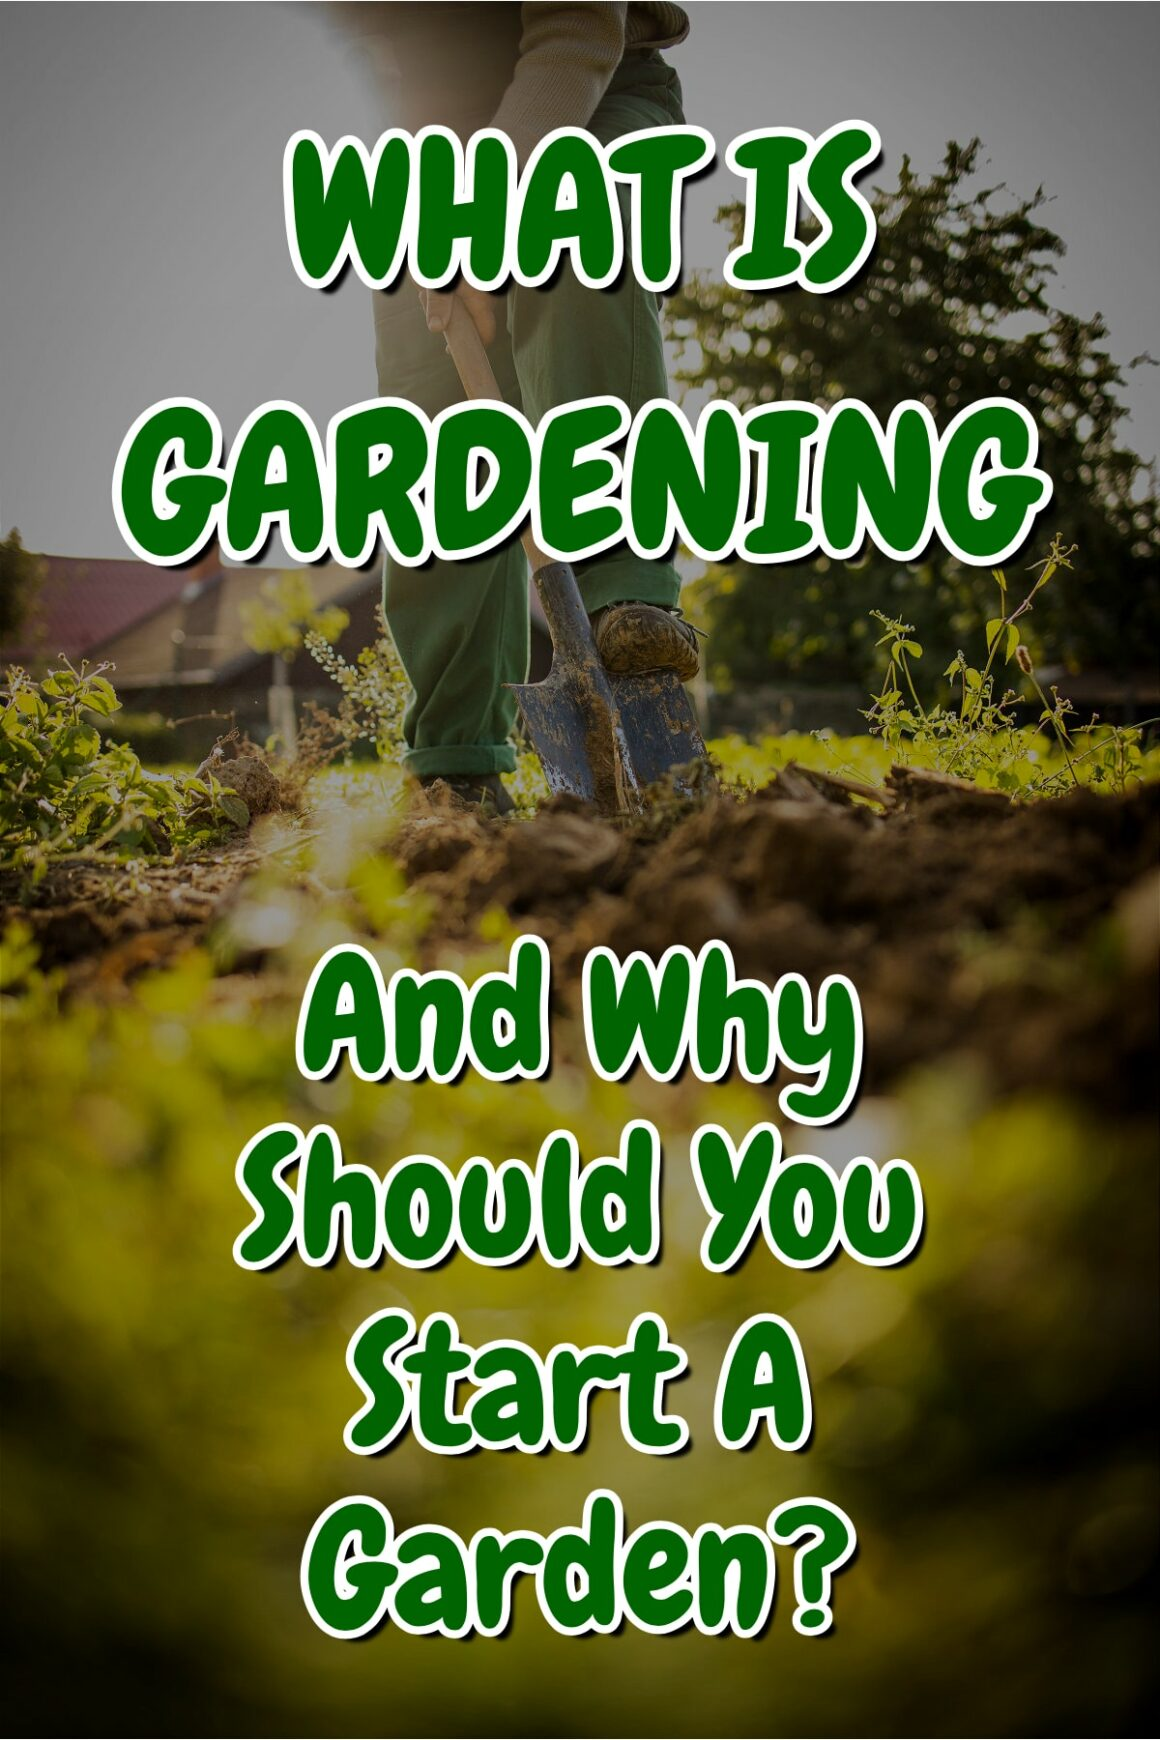 What Is Gardening And Why Should You Start A Garden?